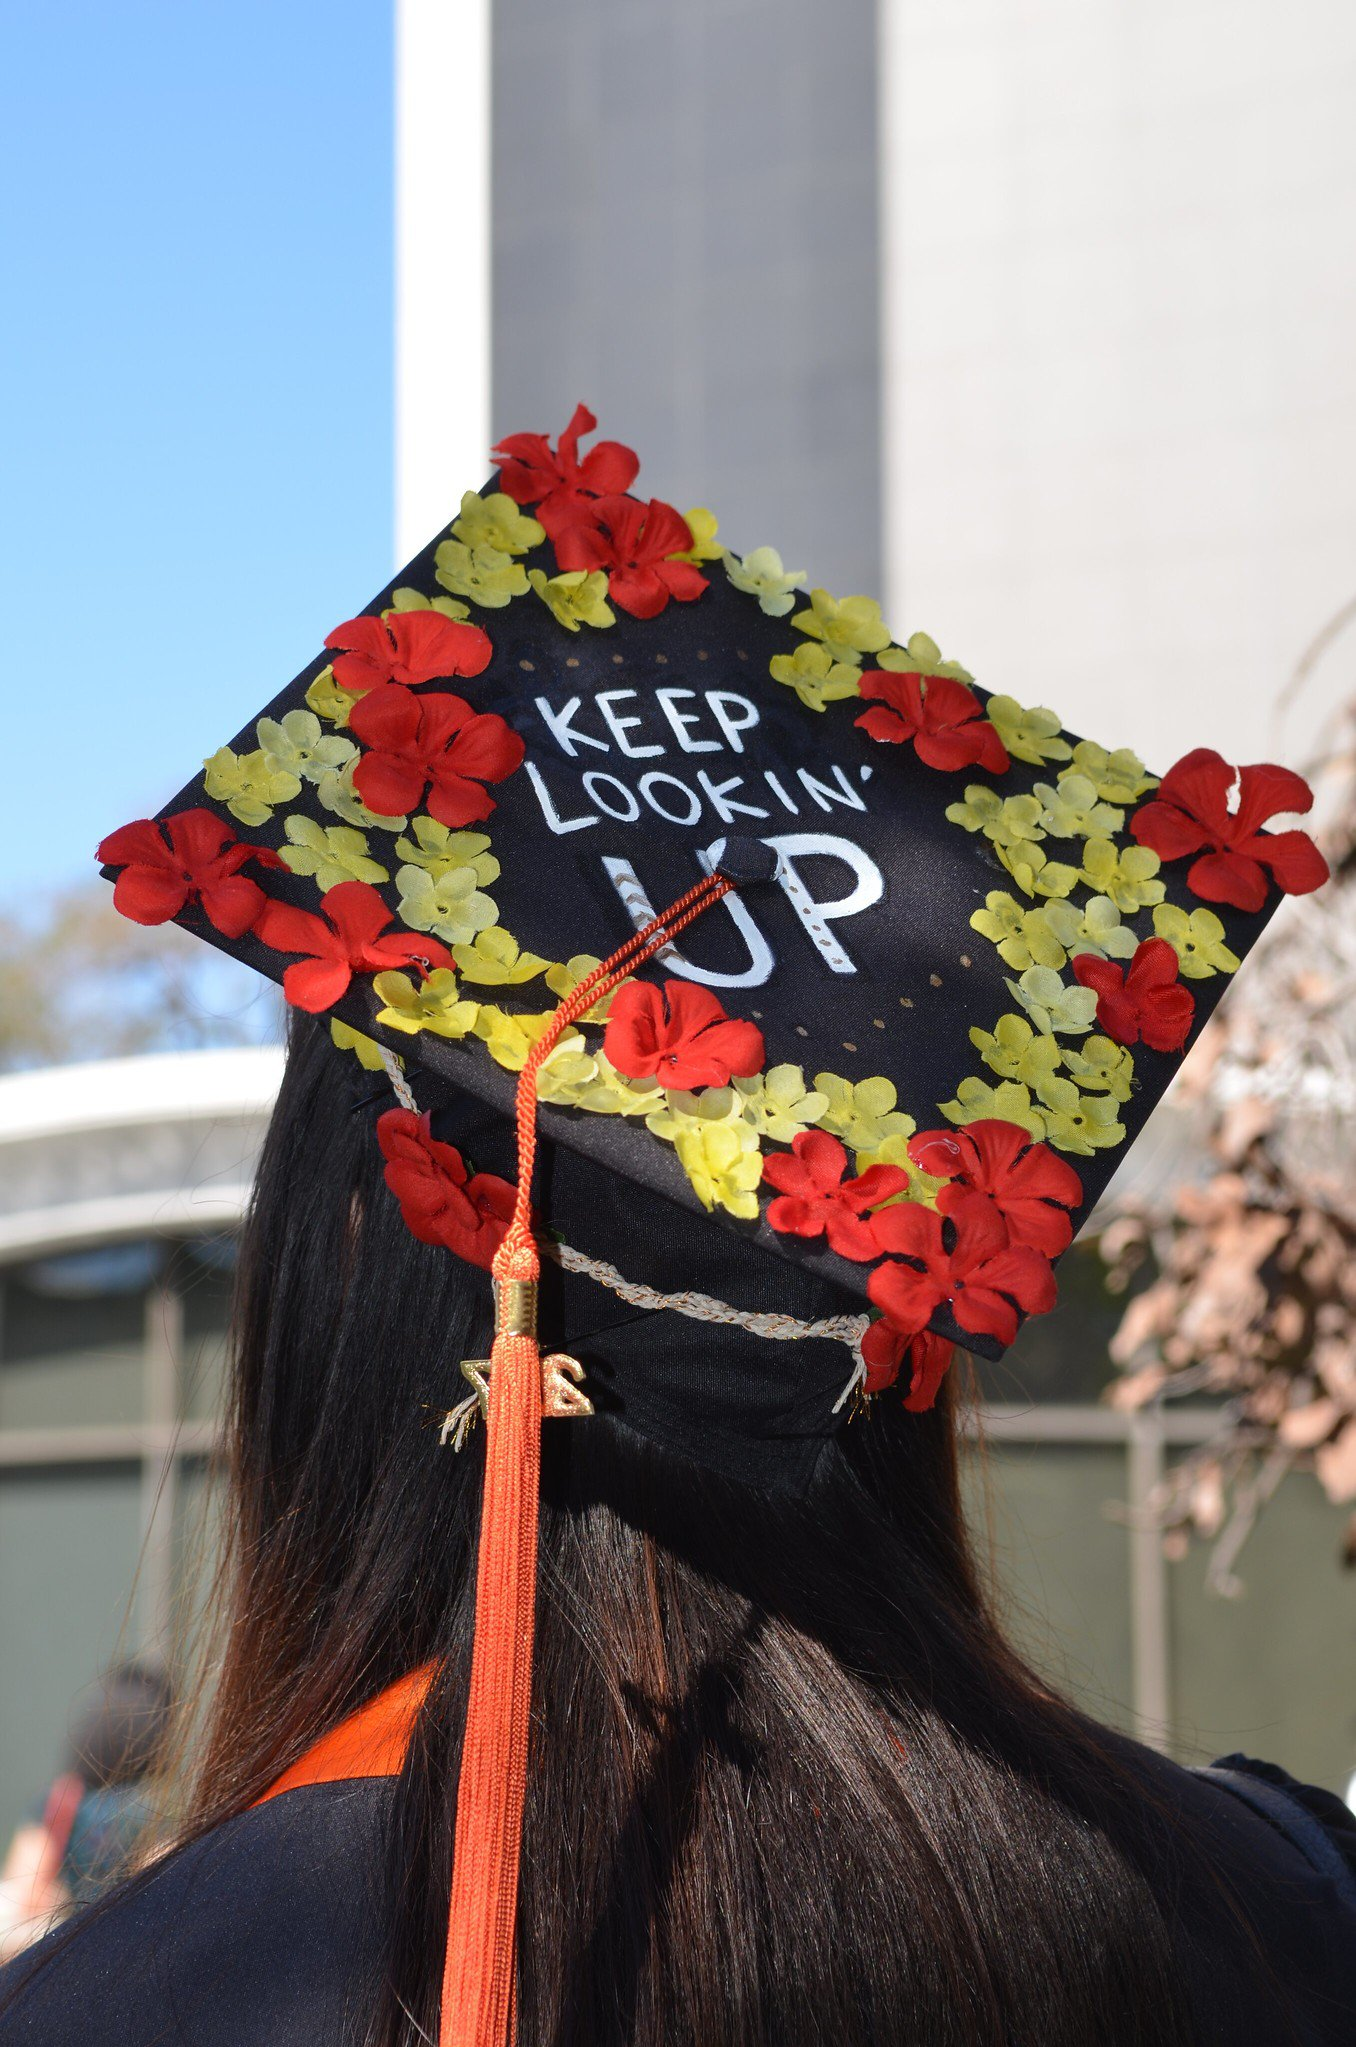 Back view of graduating student in hat saying Keep Looking Up